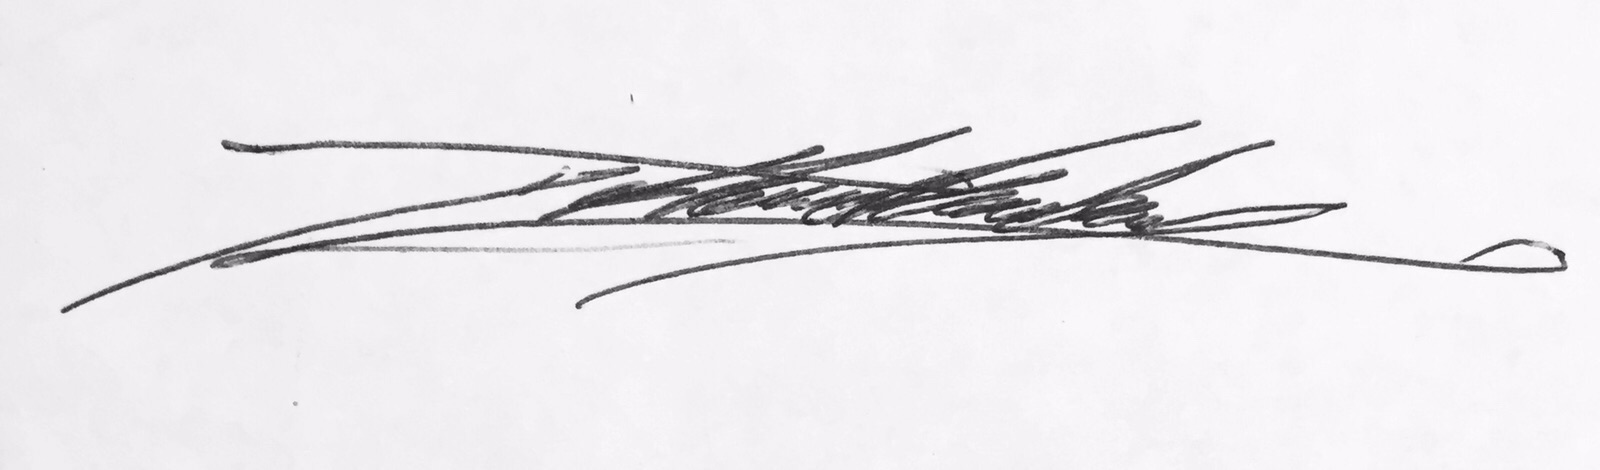 joshua healey lapena Signature